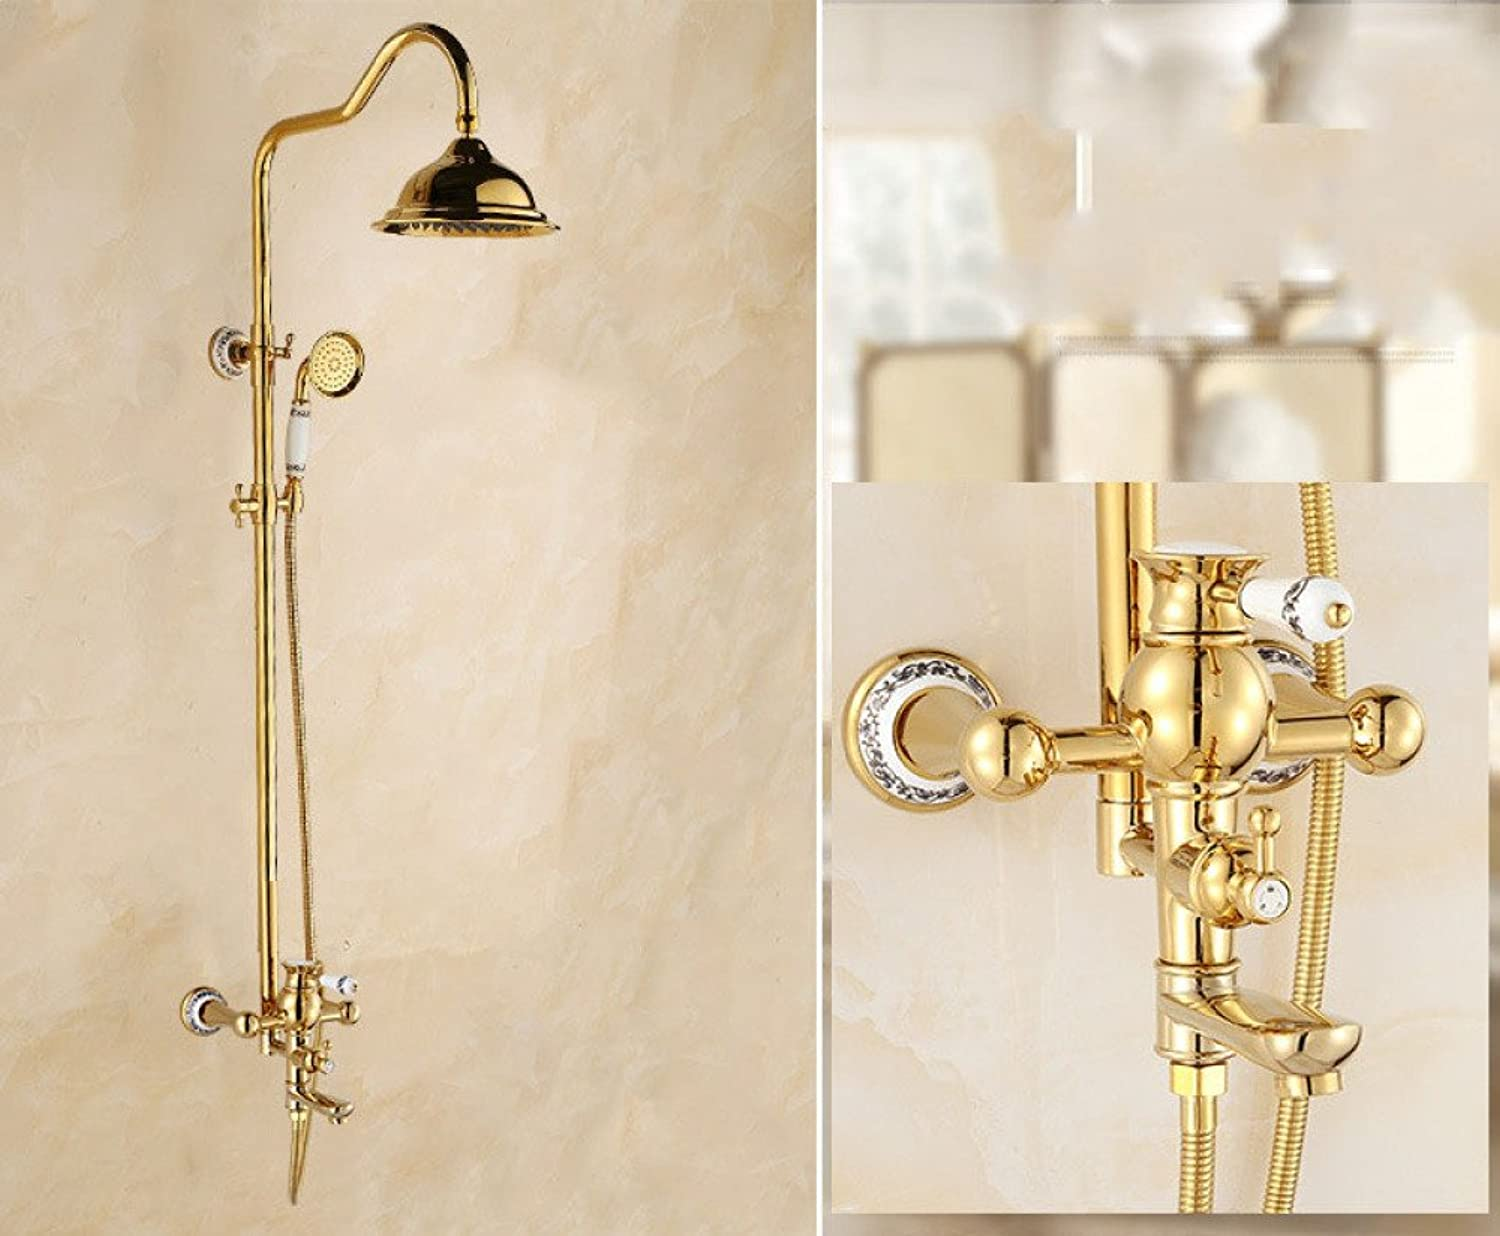 ZHWY household items ZHWY gold plating shower Handheld all bronze Shower set bathroom Hot and cold water Shower faucet,B